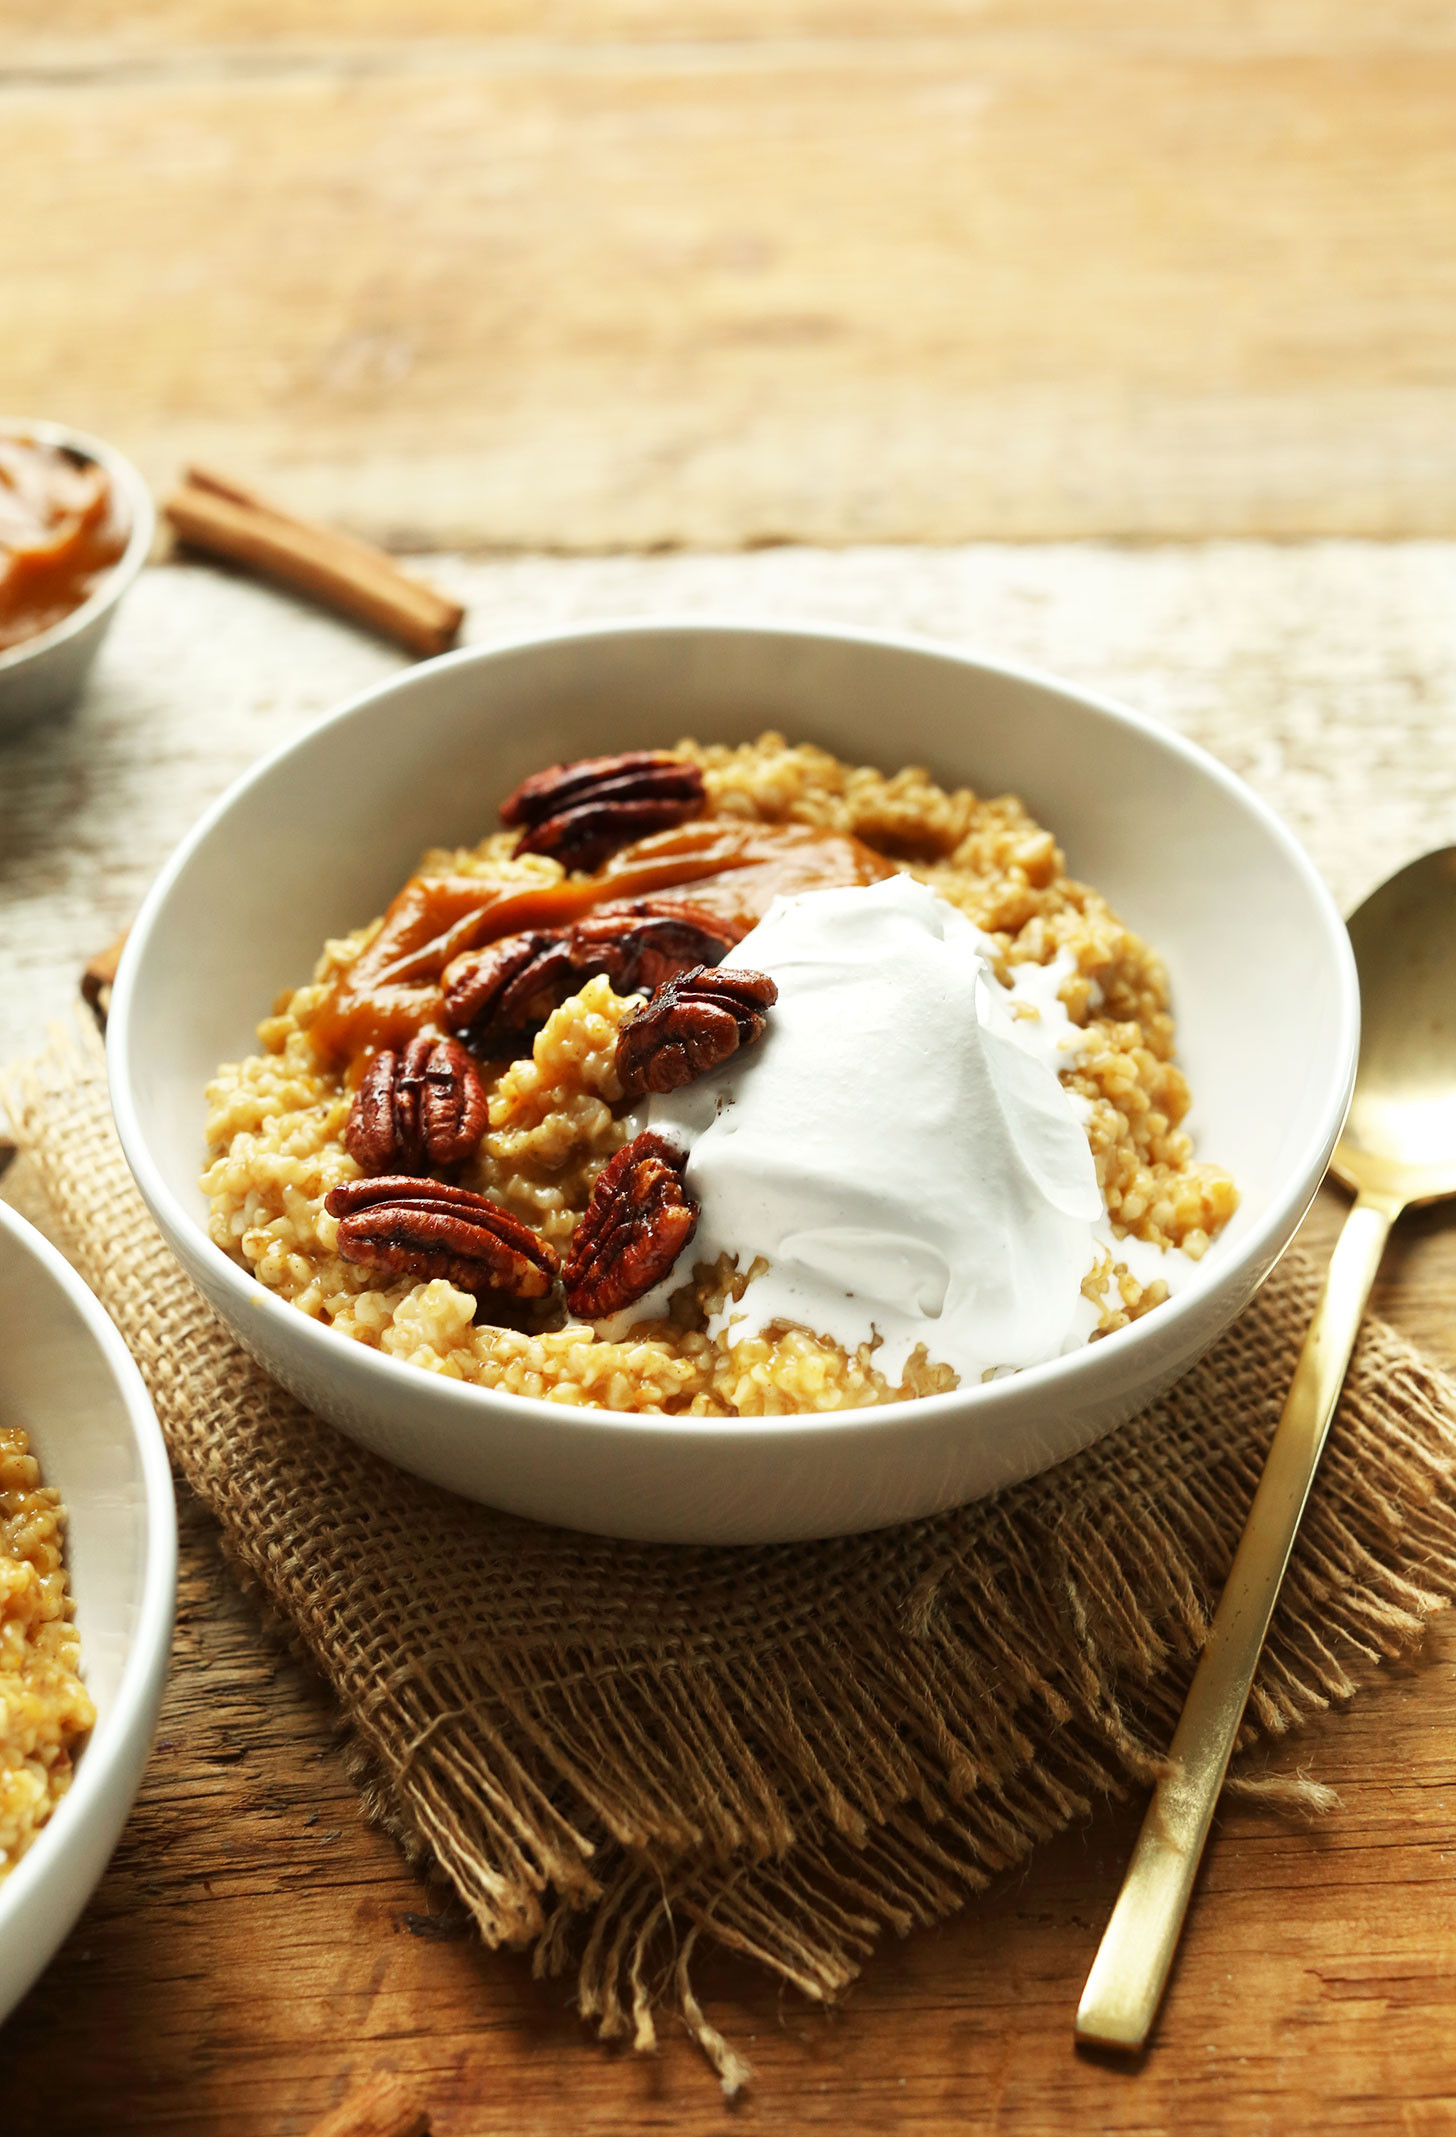 Healthy Oats Breakfast Recipes  30 wholesome vegan breakfasts that will keep you full